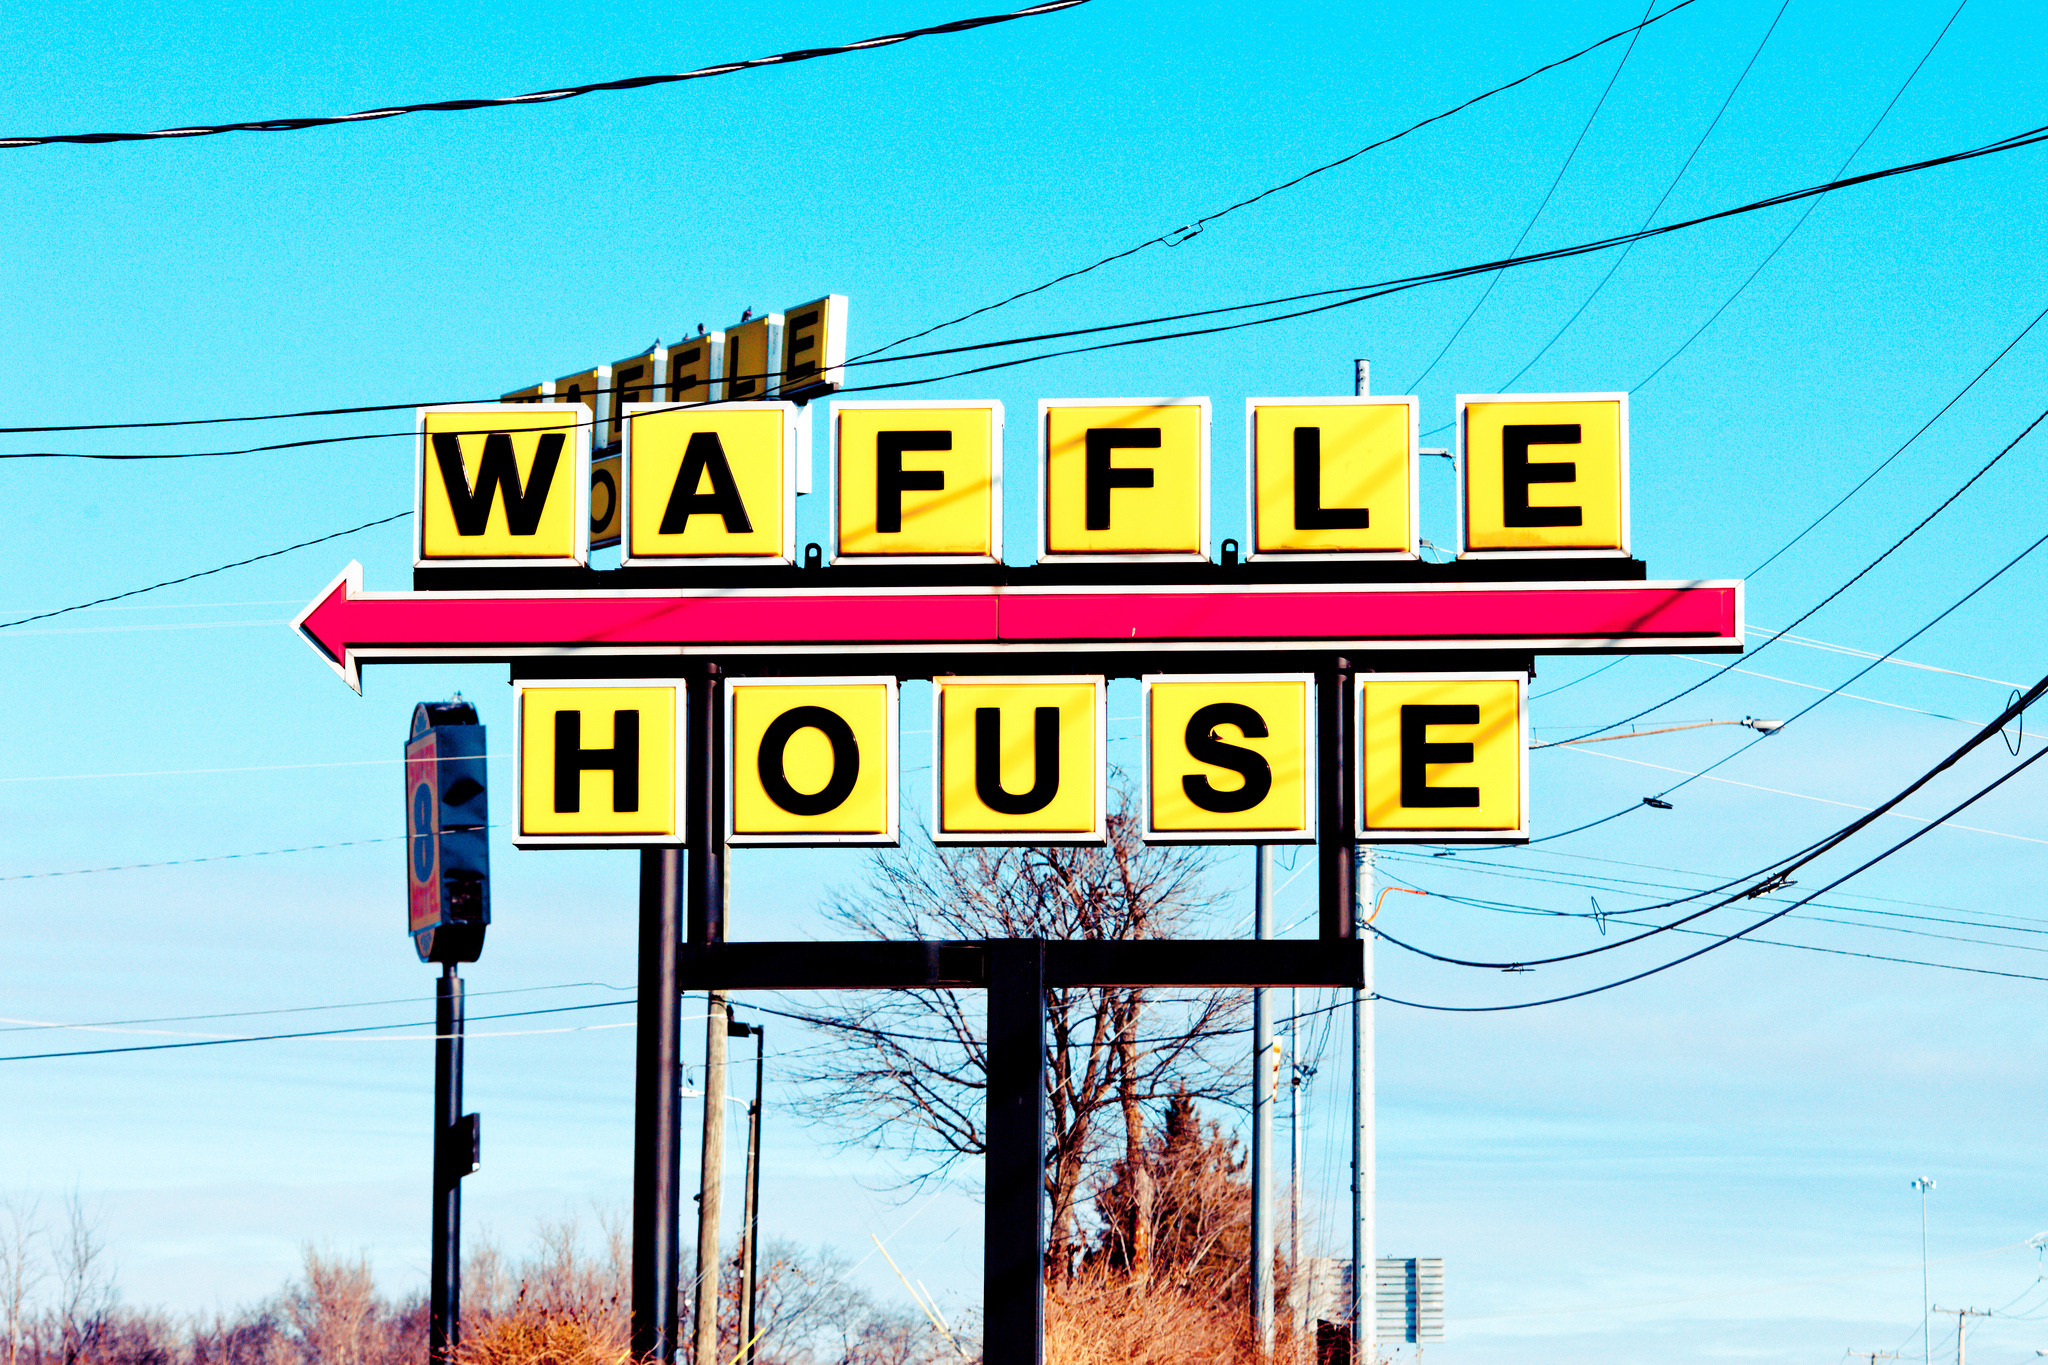 Guy Cooks Own Meal At Waffle House As Employees Sleep